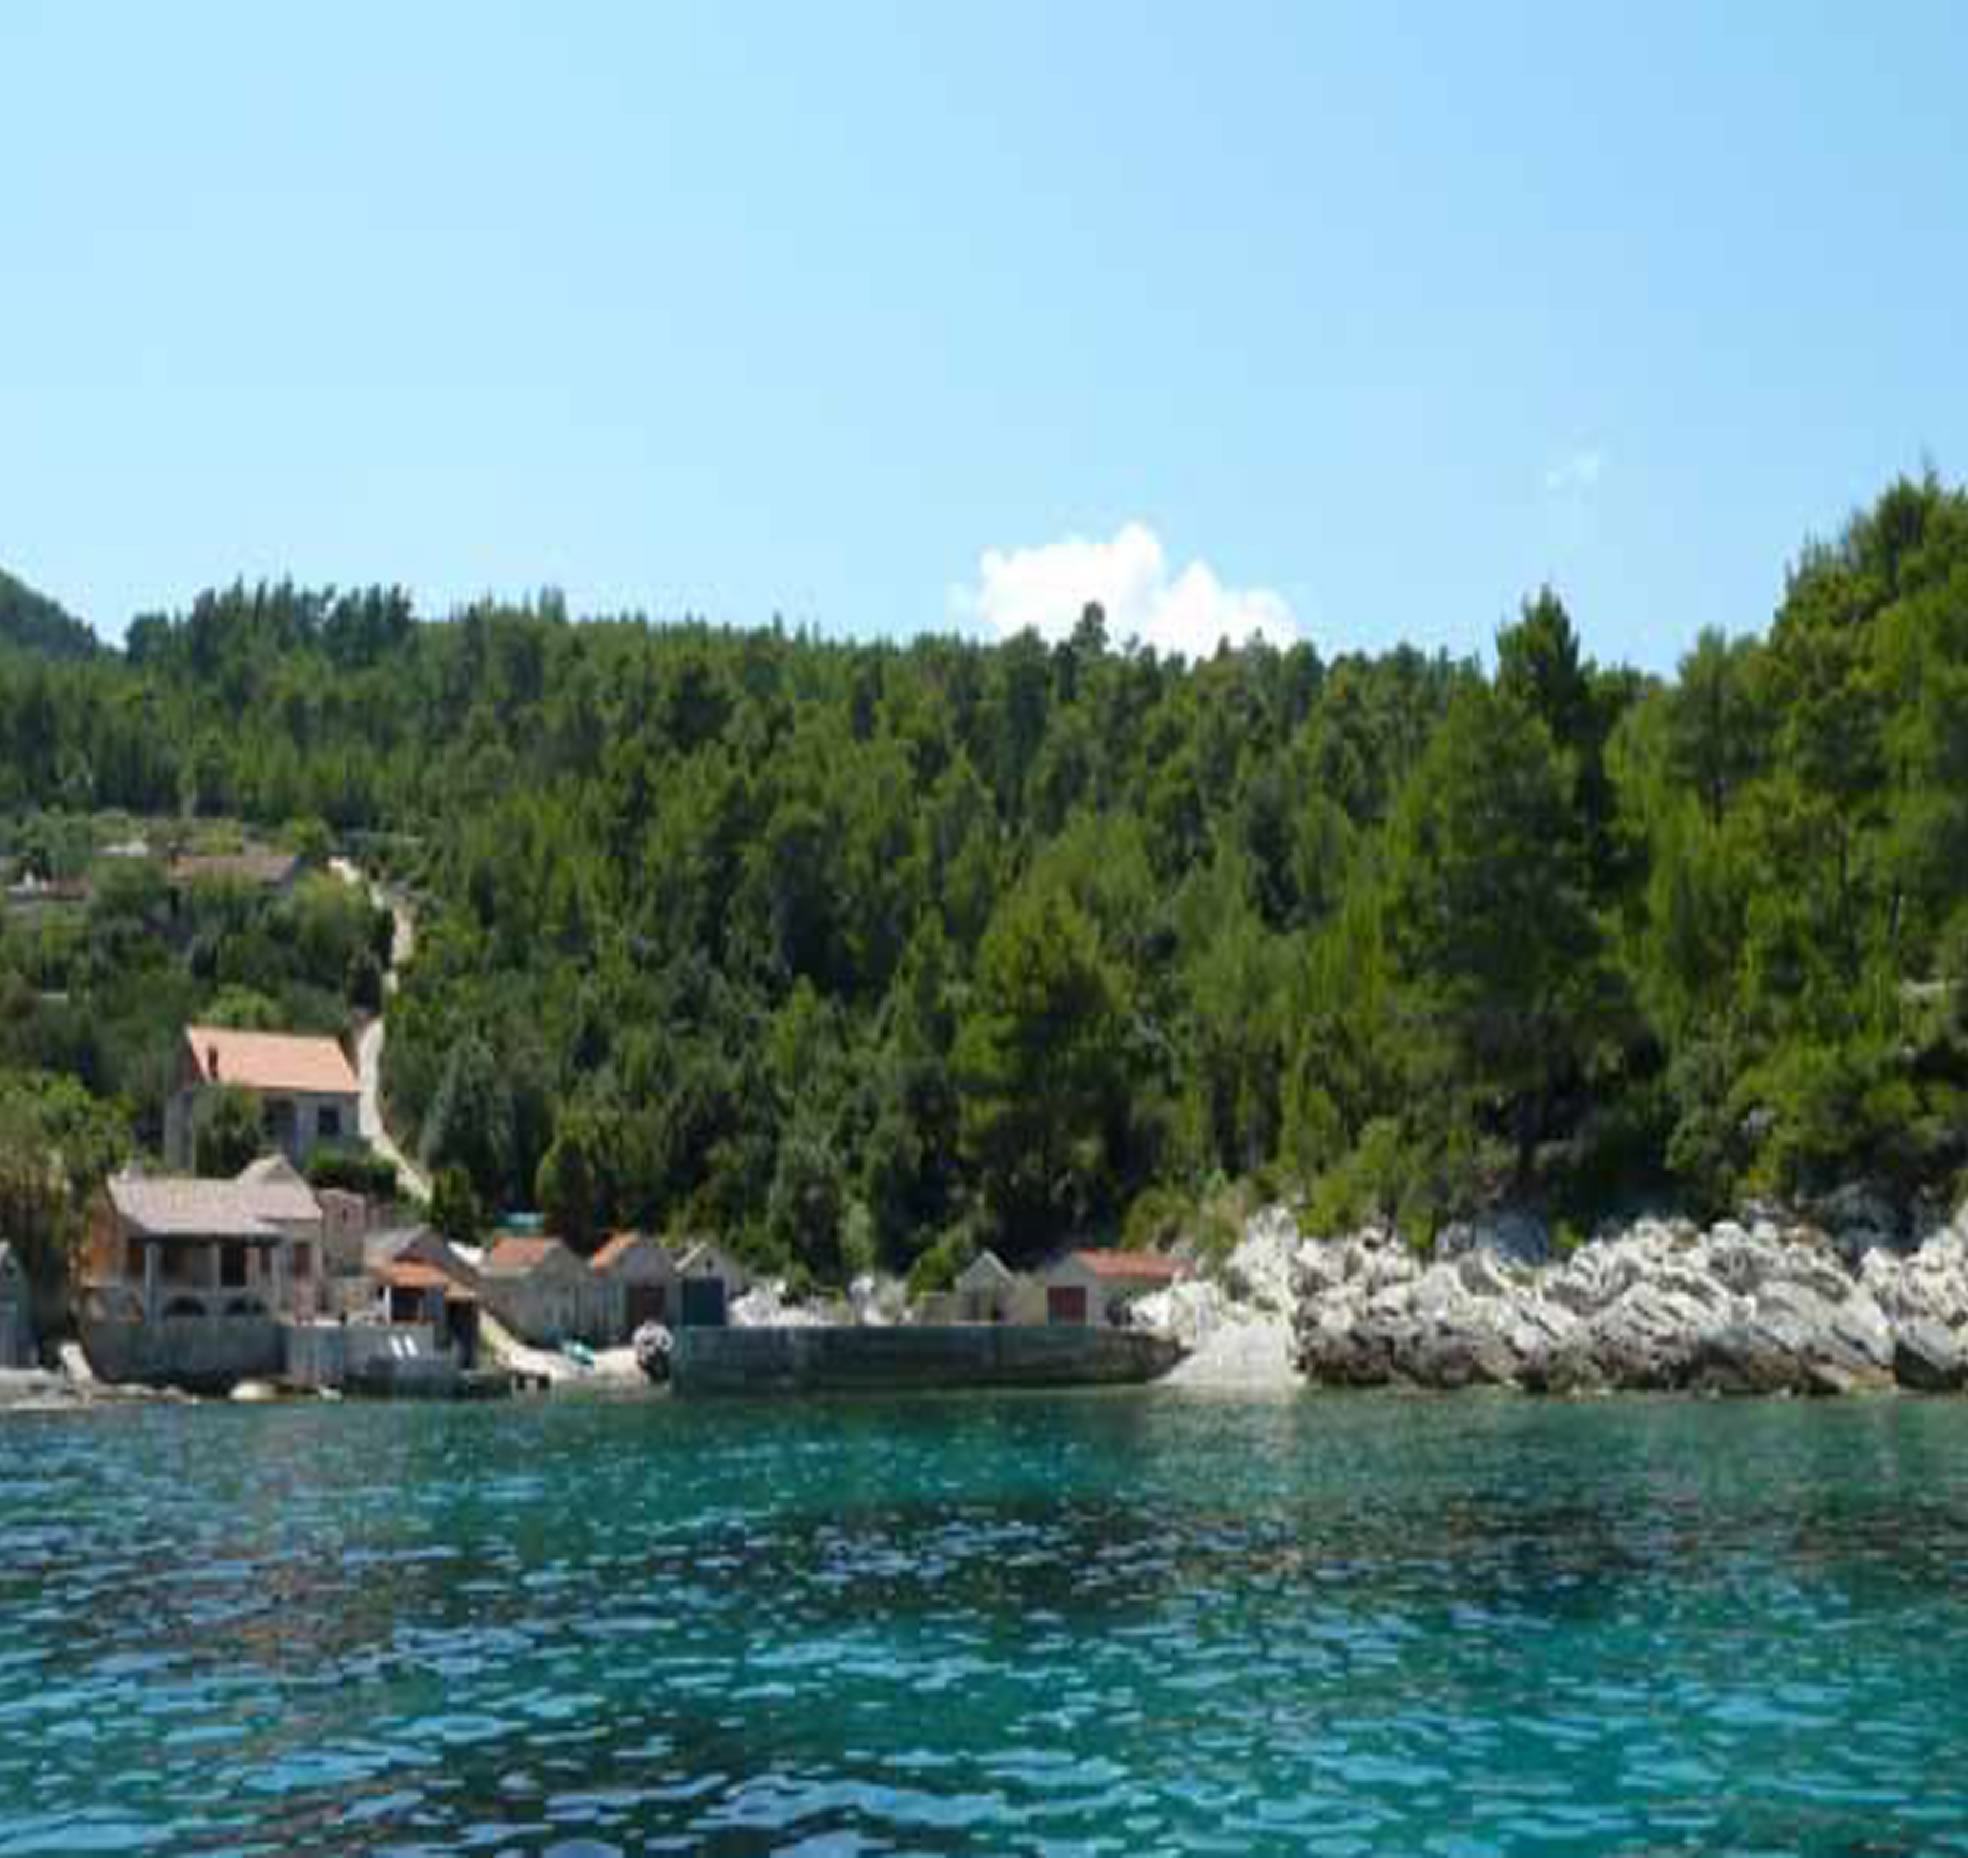 Babina, Island Korcula 22.000 m2 with old stone village with two boat houses